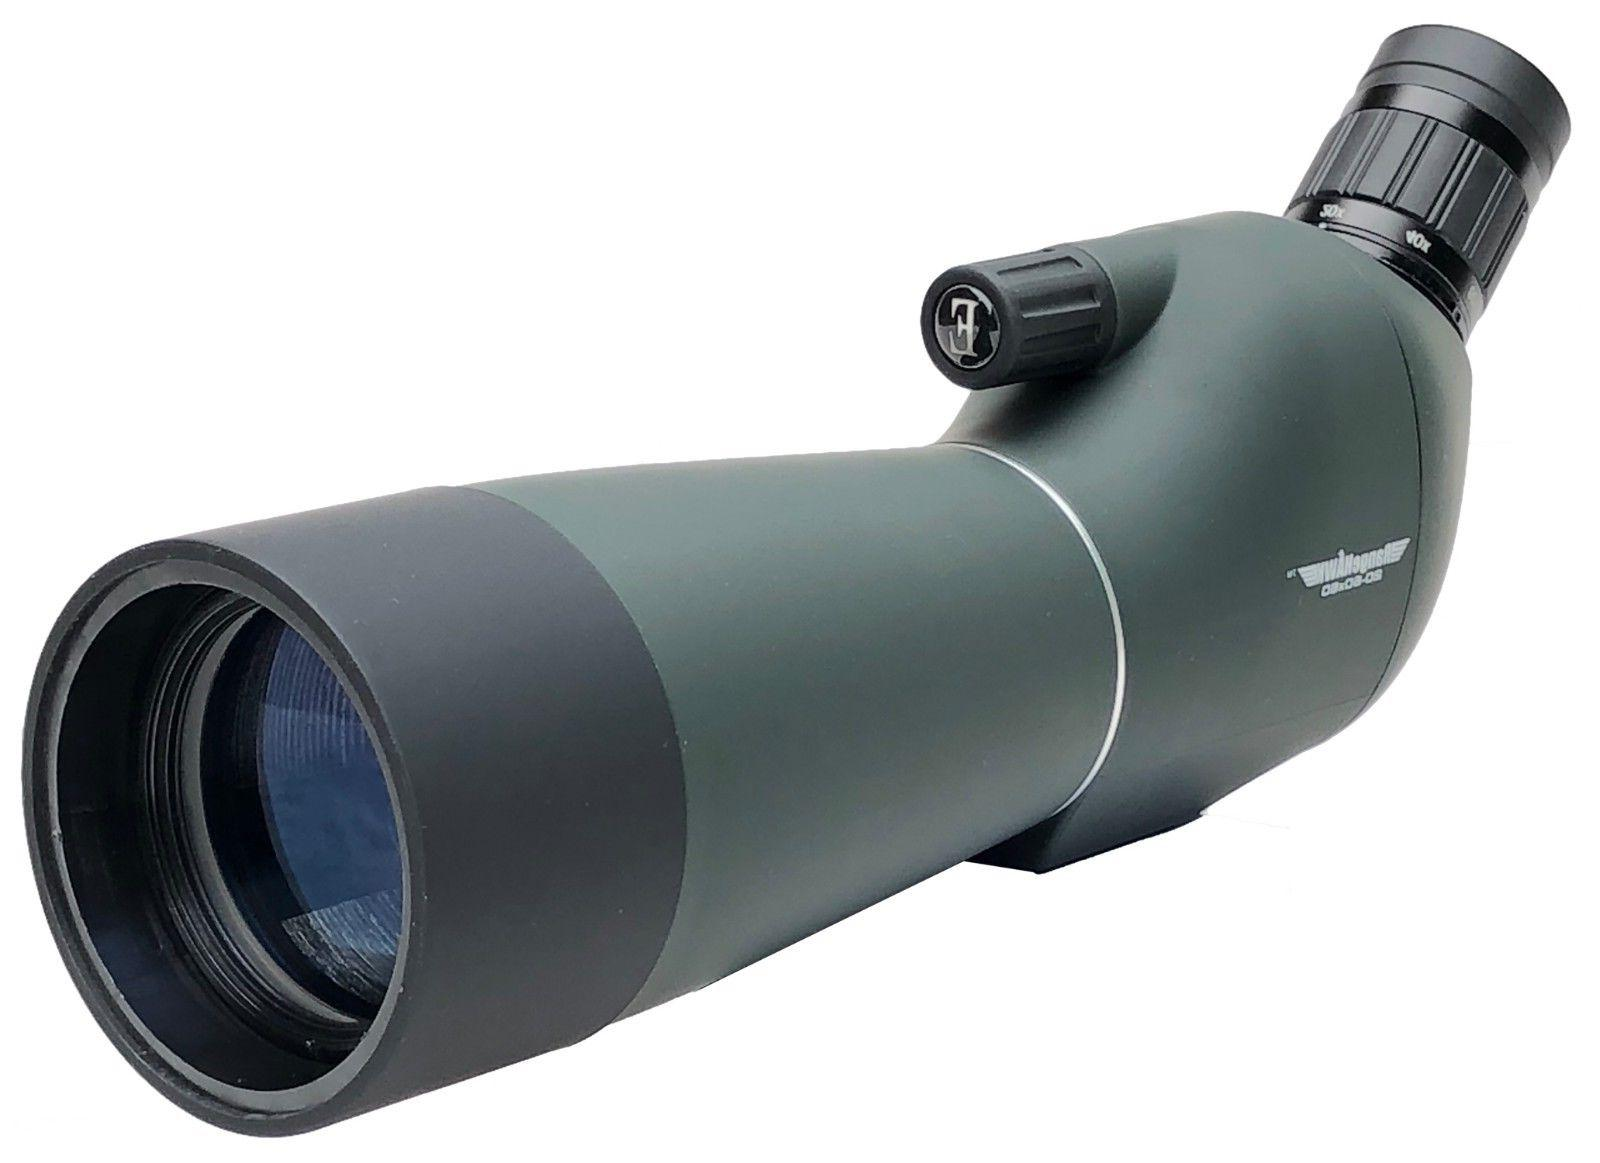 target shooting spotting scope magnification